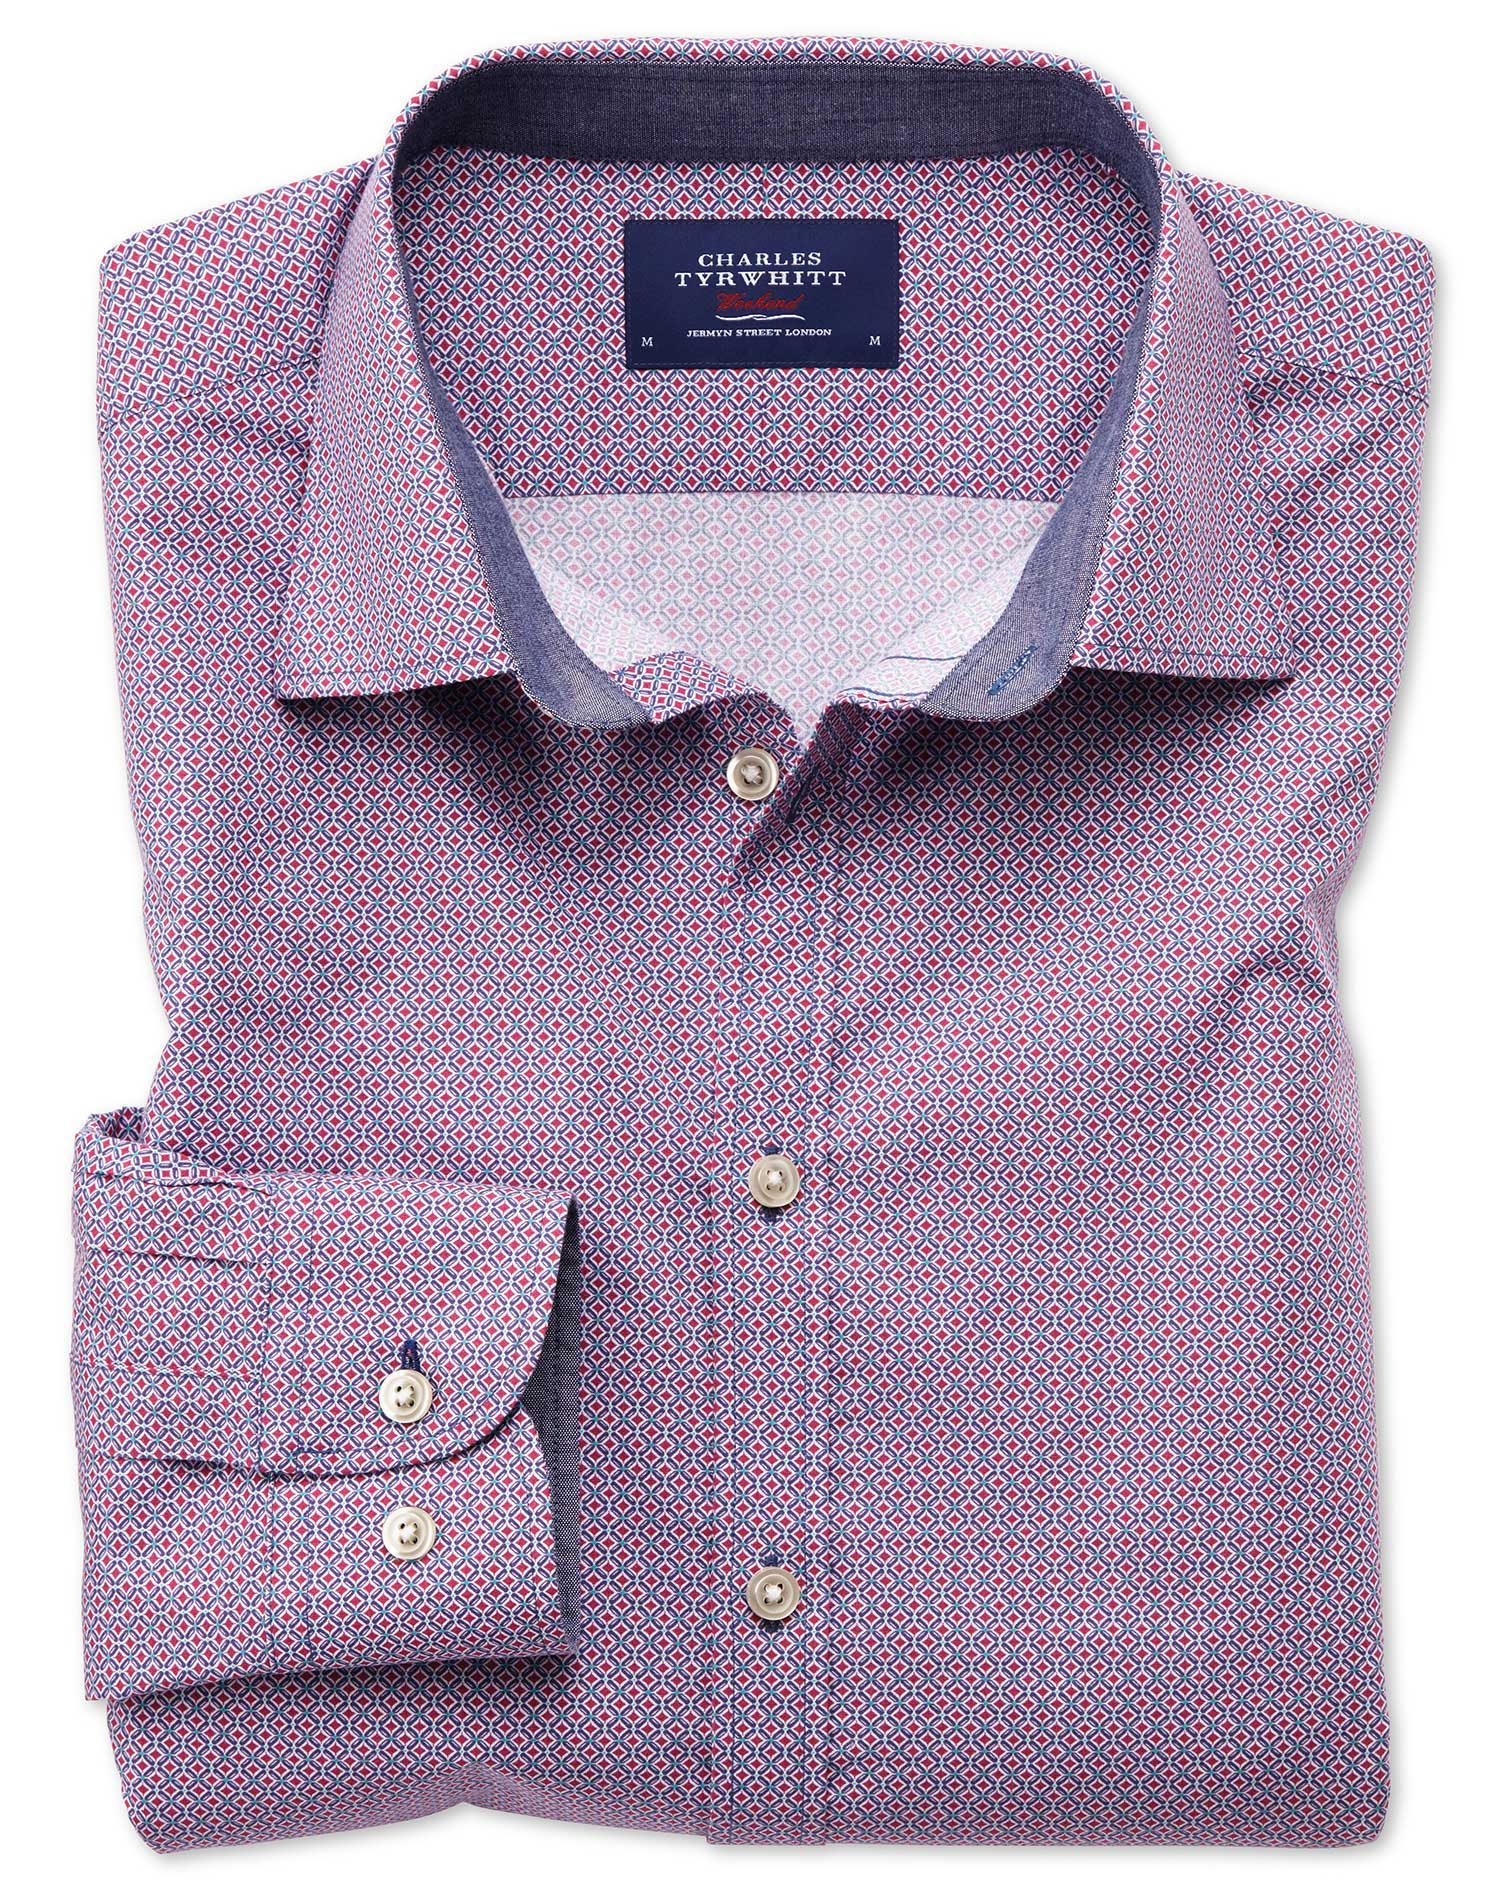 Extra Slim Fit Magenta and Blue Print Cotton Shirt Single Cuff Size XL by Charles Tyrwhitt